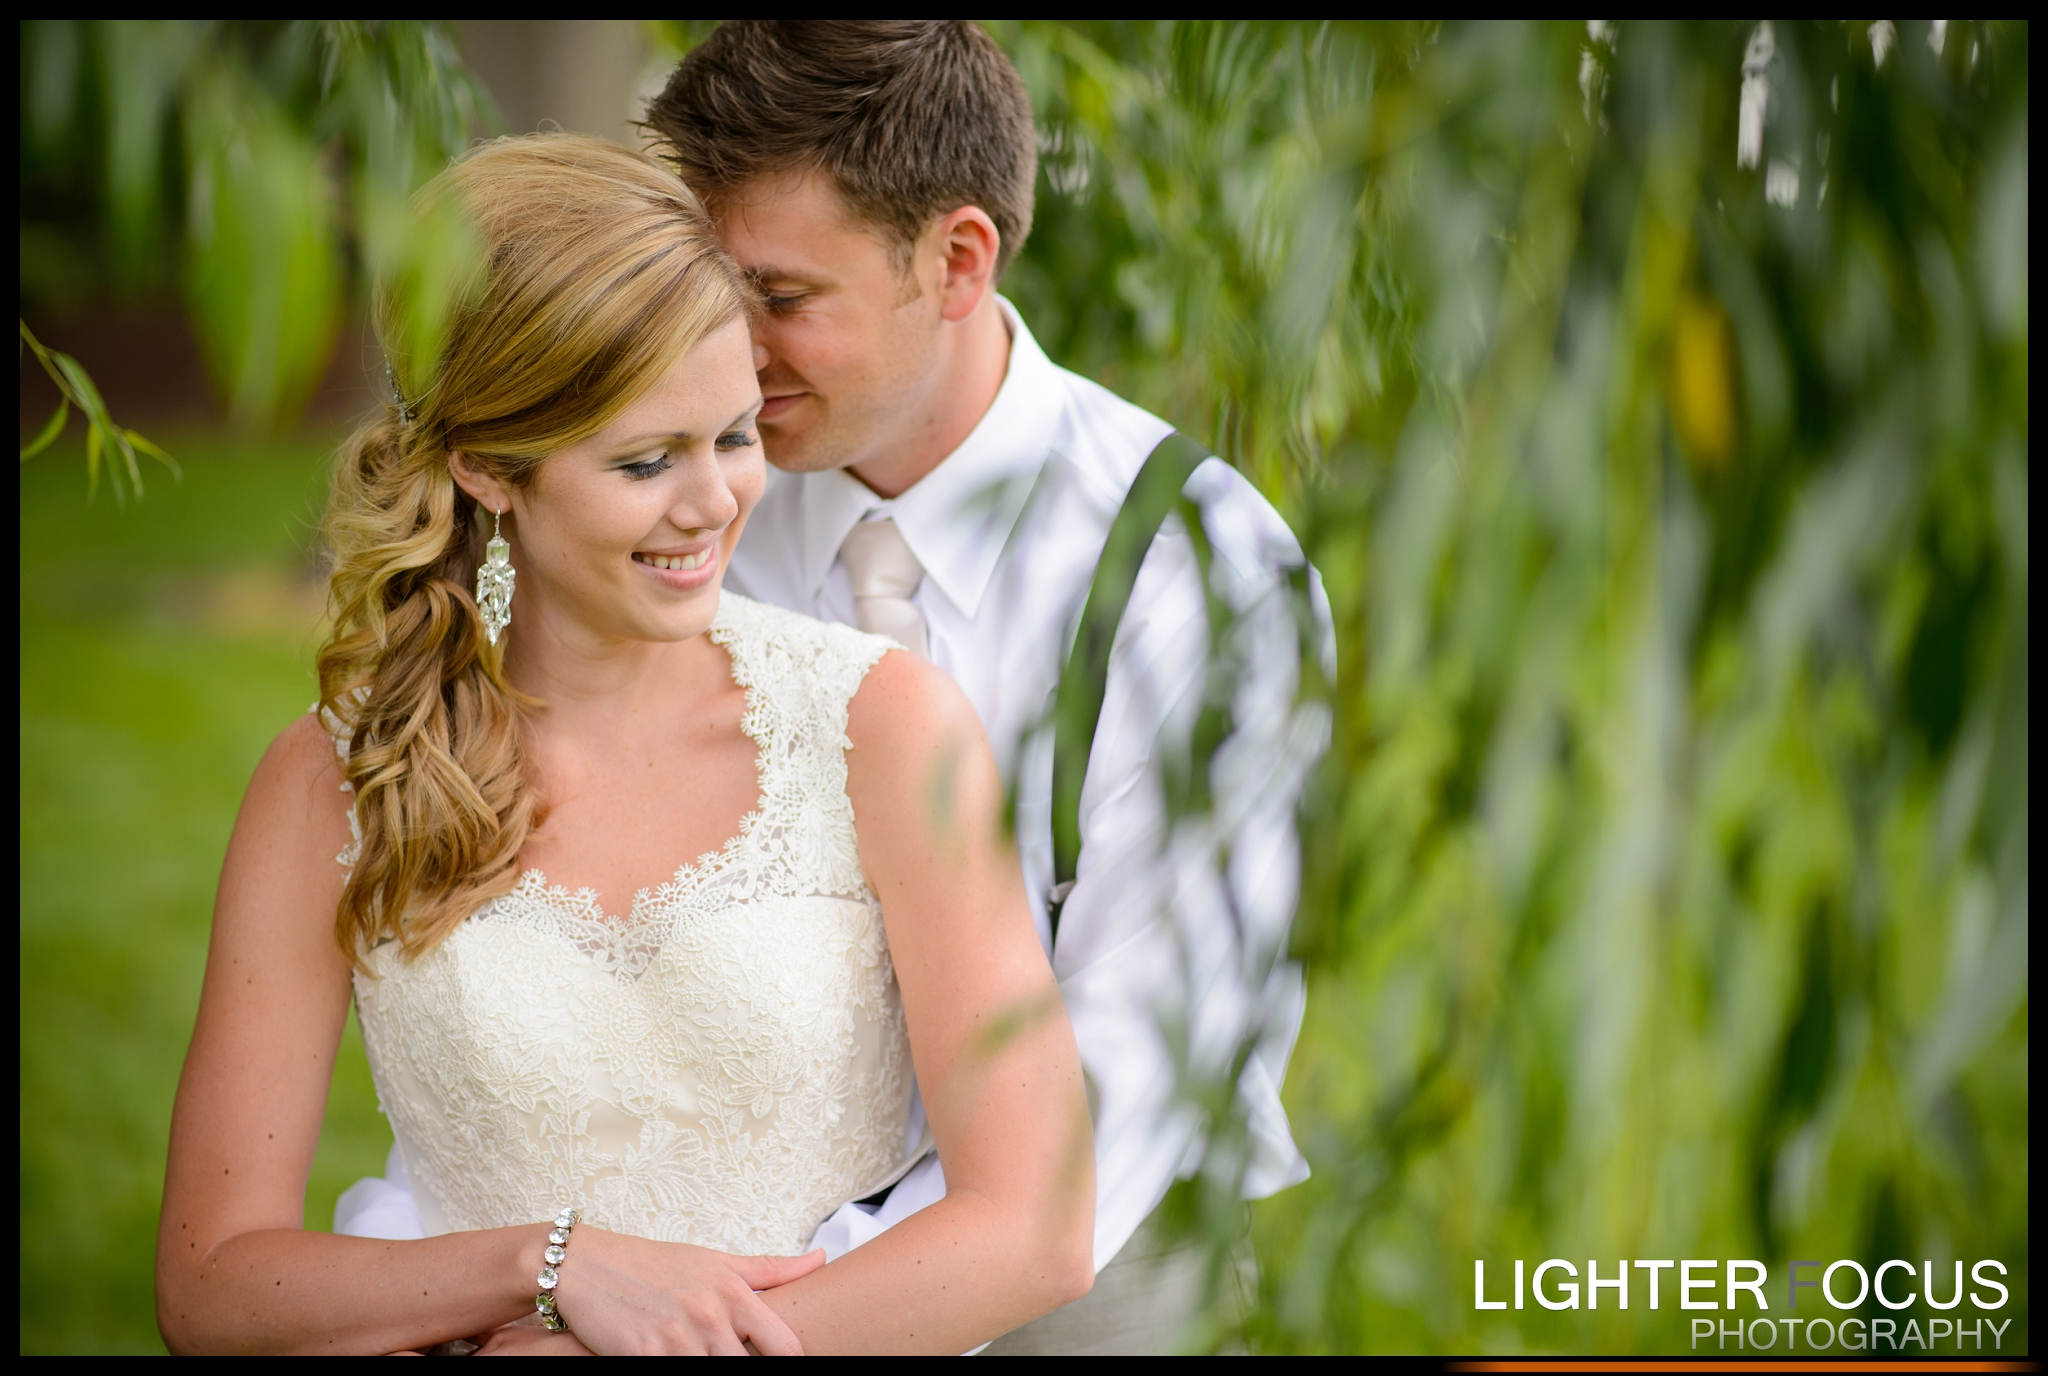 Doug & Adrienne | Lighter Focus Photography | Columbia wedding photographer